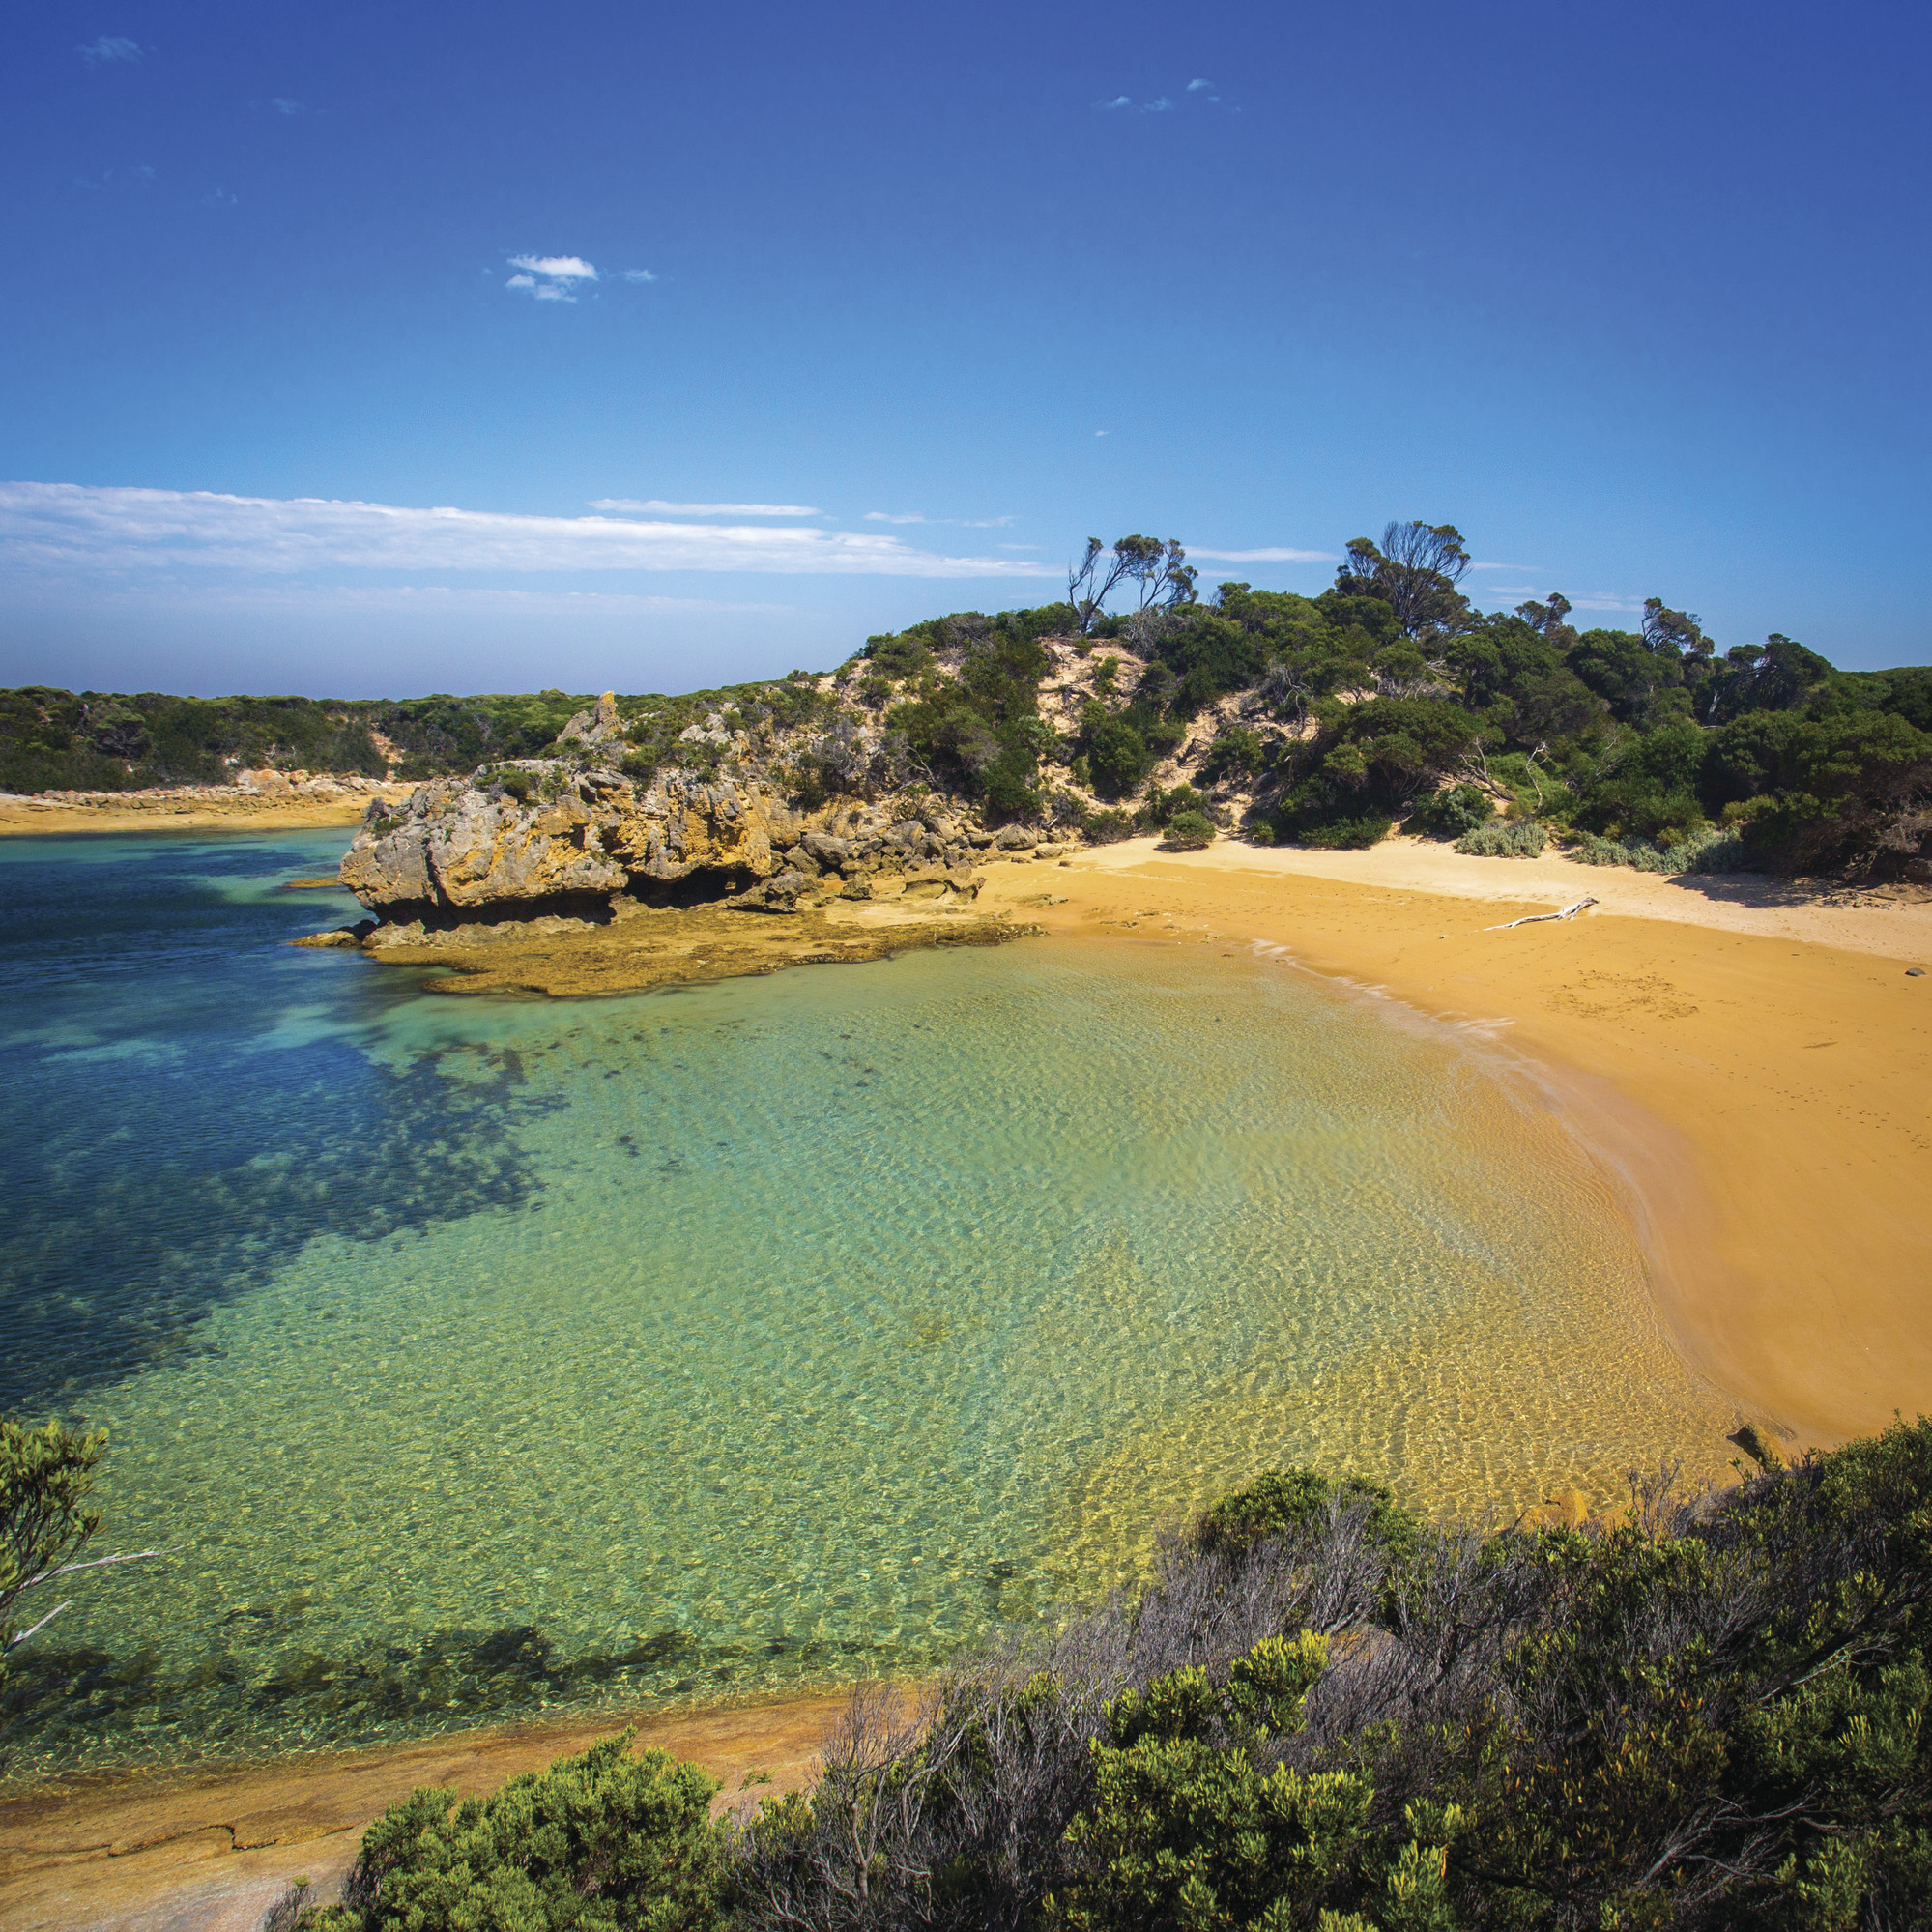 Beach Island: Your Guide To Australia's Most Incredible Islands